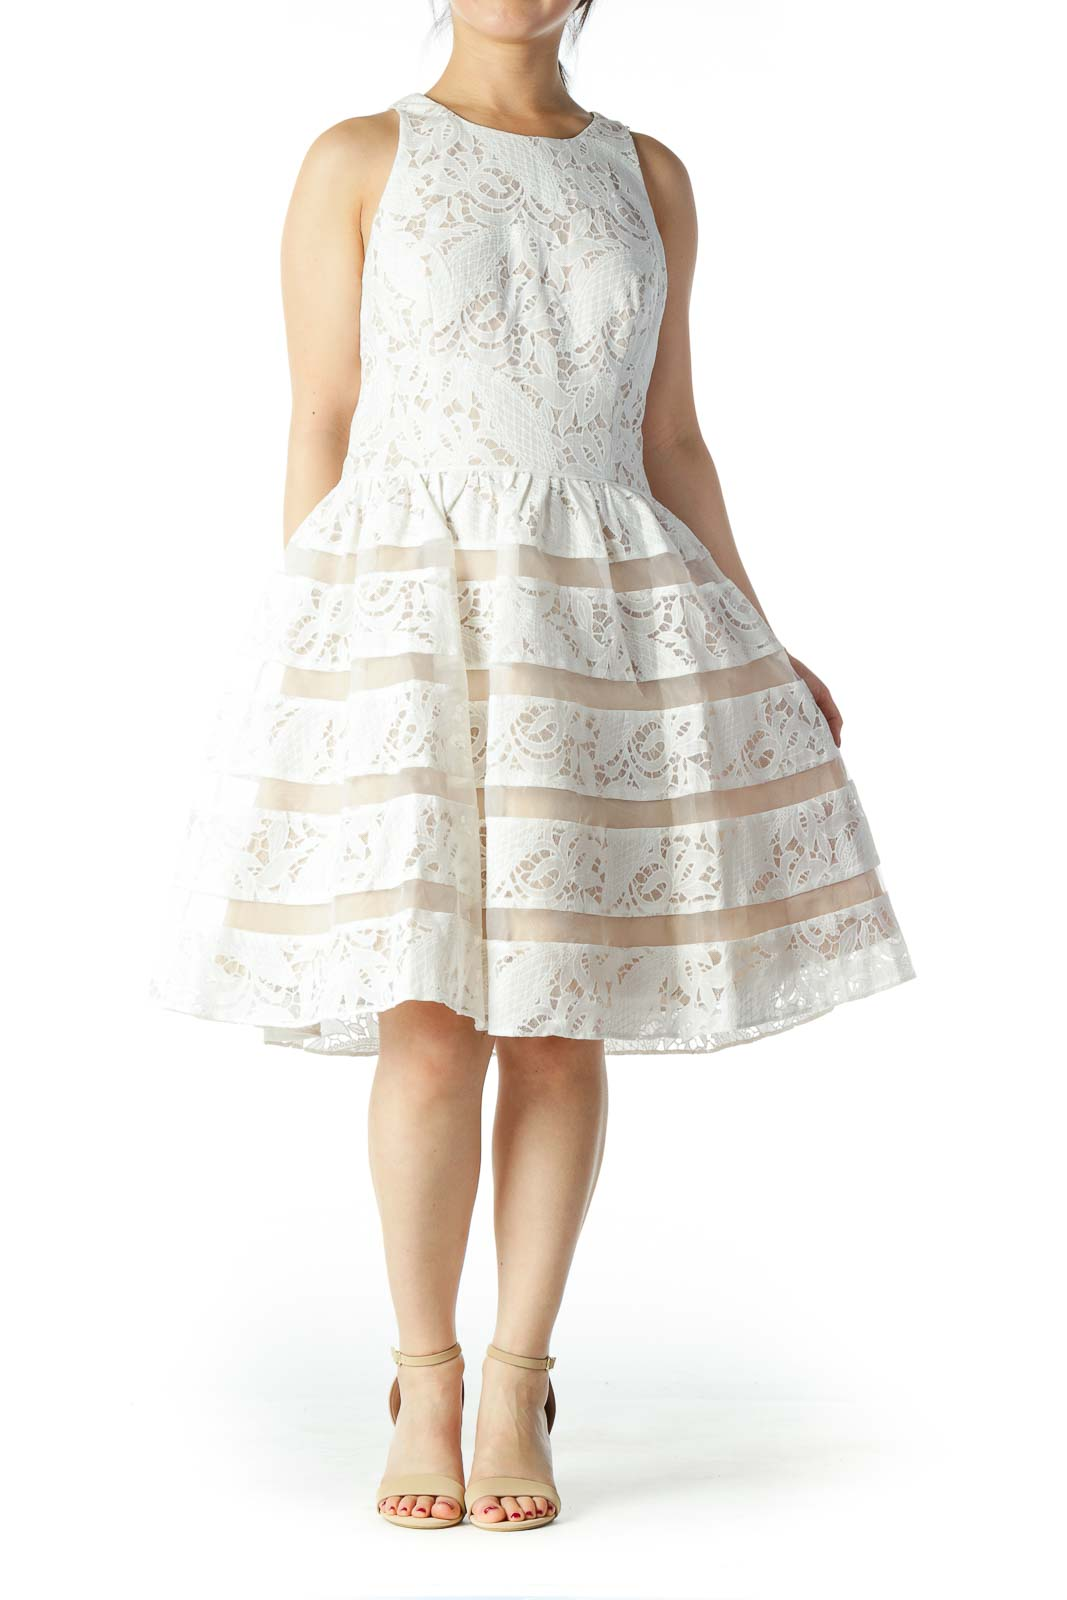 White and Nude Lace Tea Dress